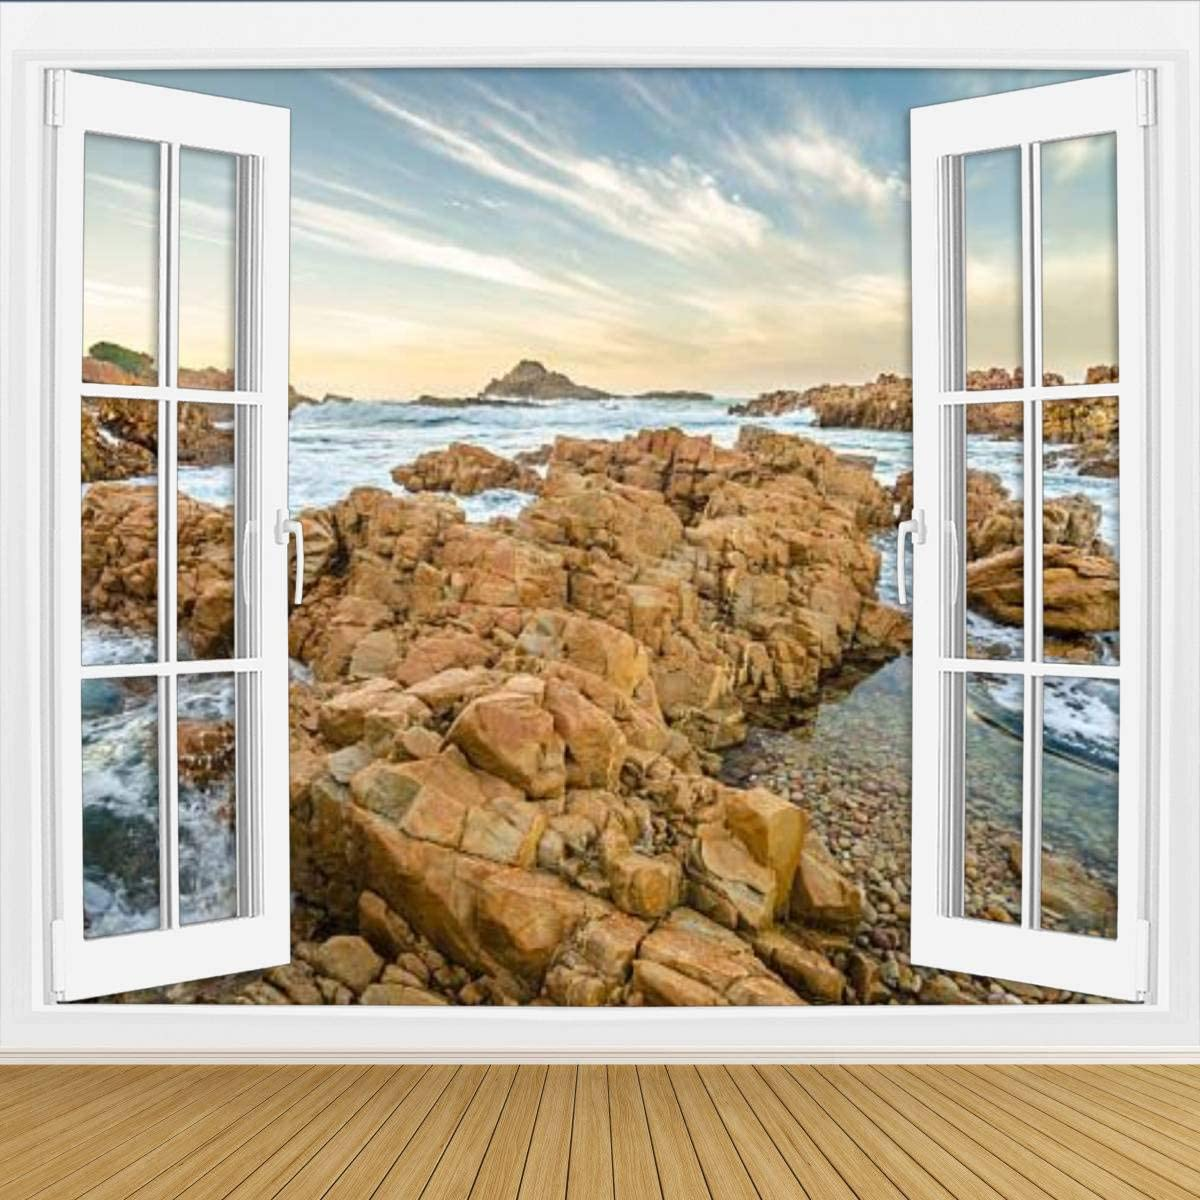 KEIRUNNRUGS Creative Window Wall Sticker Wall Mural Knysna Heads Rocks Garden Route South Africa Self Adhesive Removable Wall Decal Posters Wall Art Decor for Living Room 100x144inch